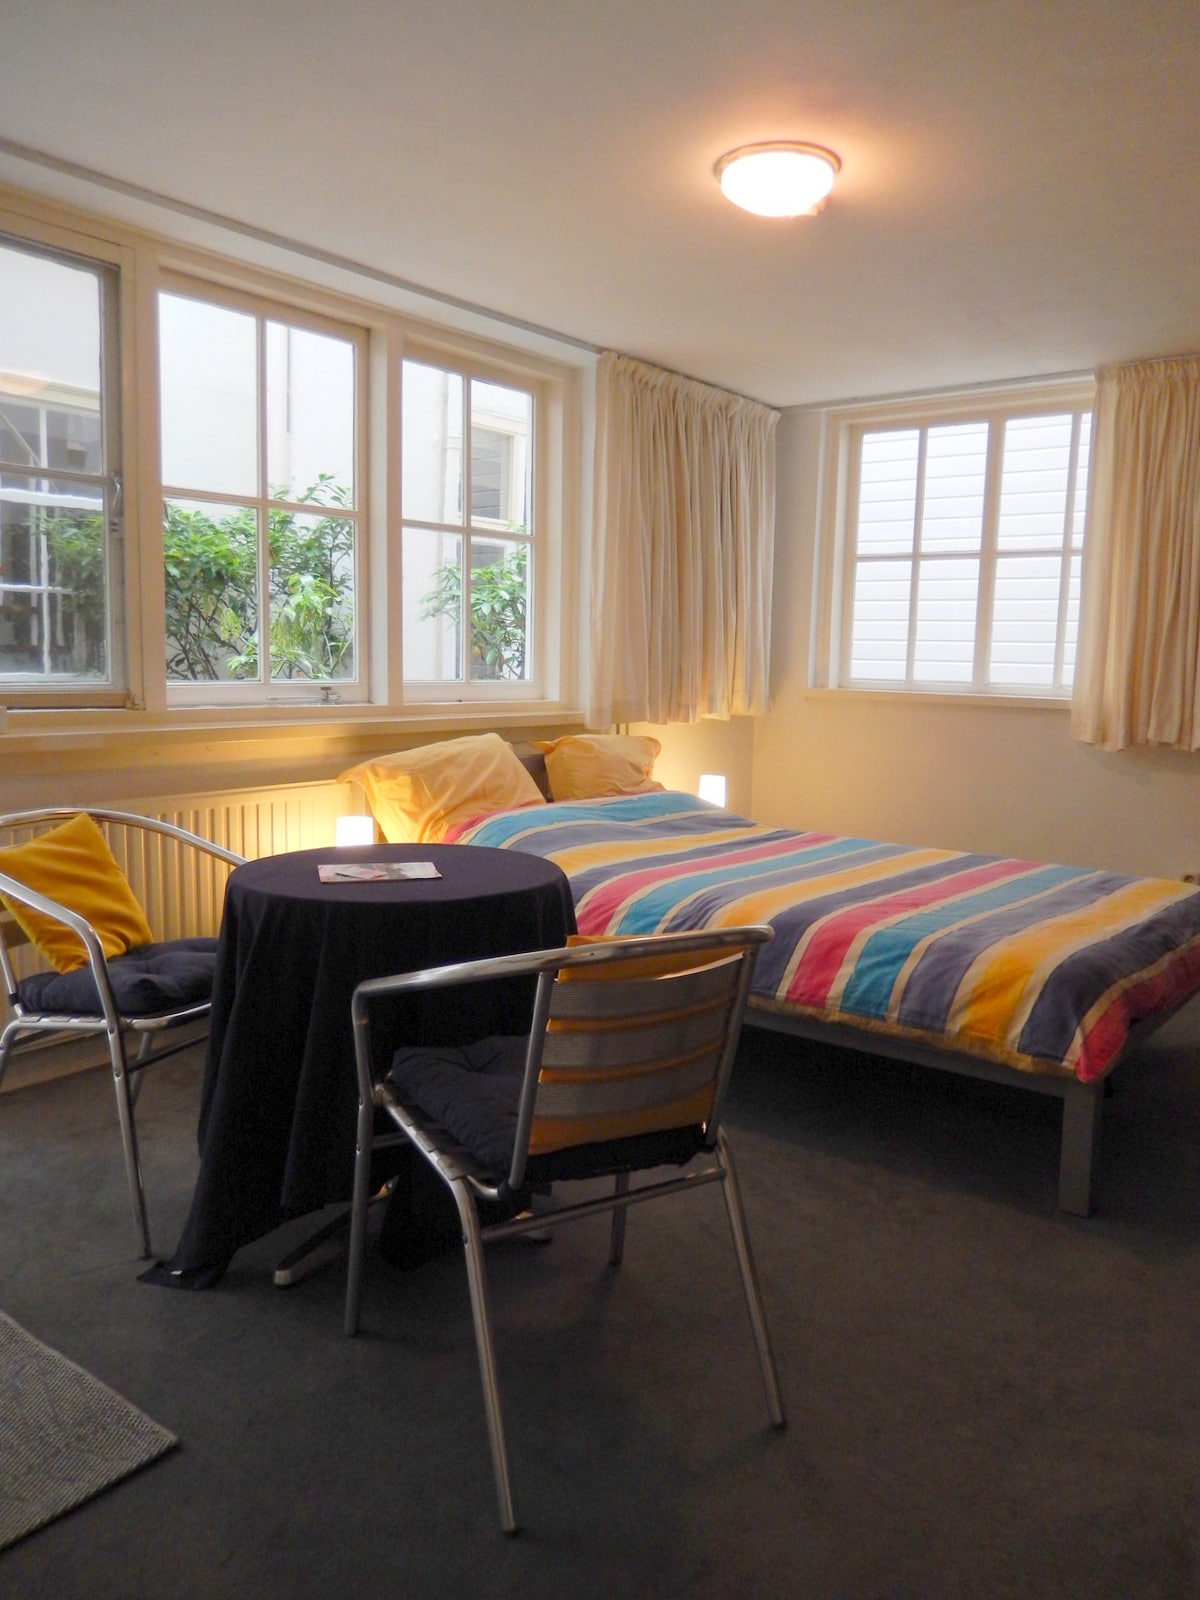 With a very comfortable double  bed and all the 'necessary' mod cons (Wifi, cable television)